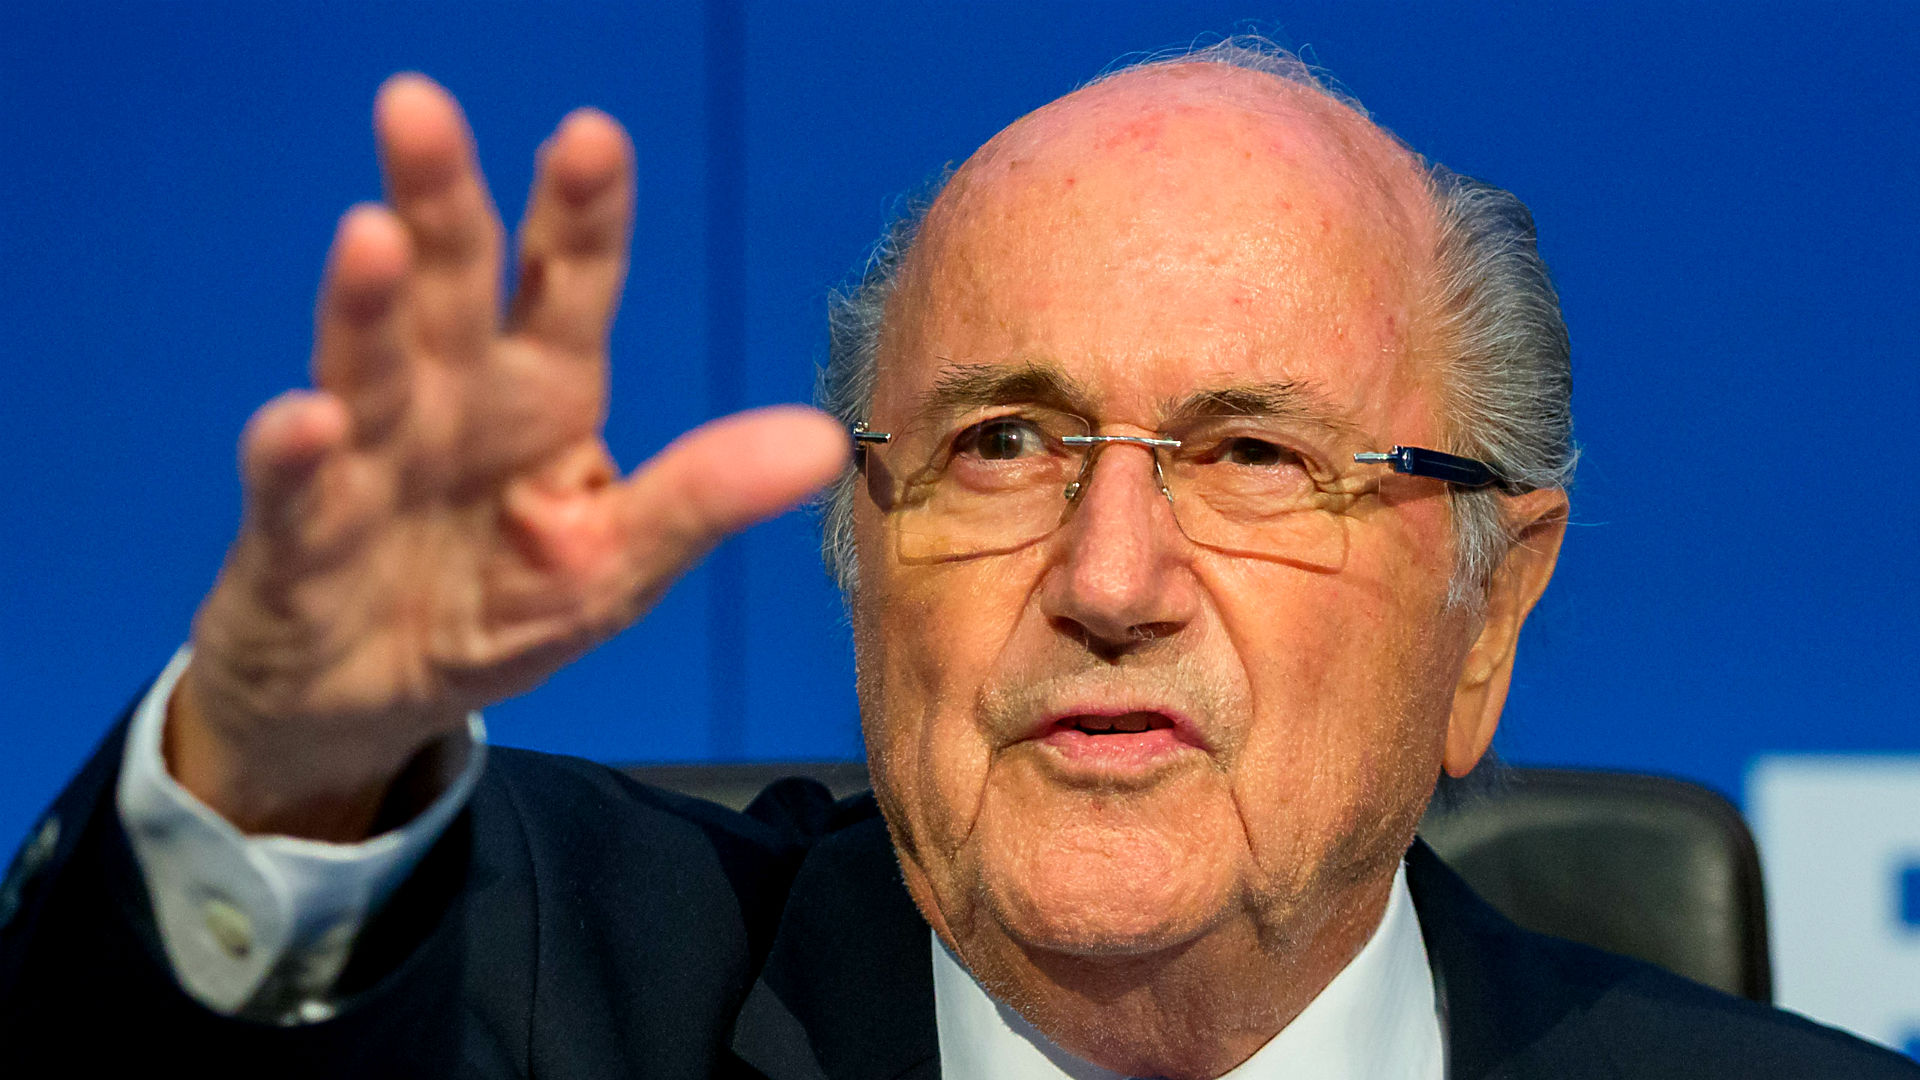 blatter-sepp100215-getty-ftr.jpg